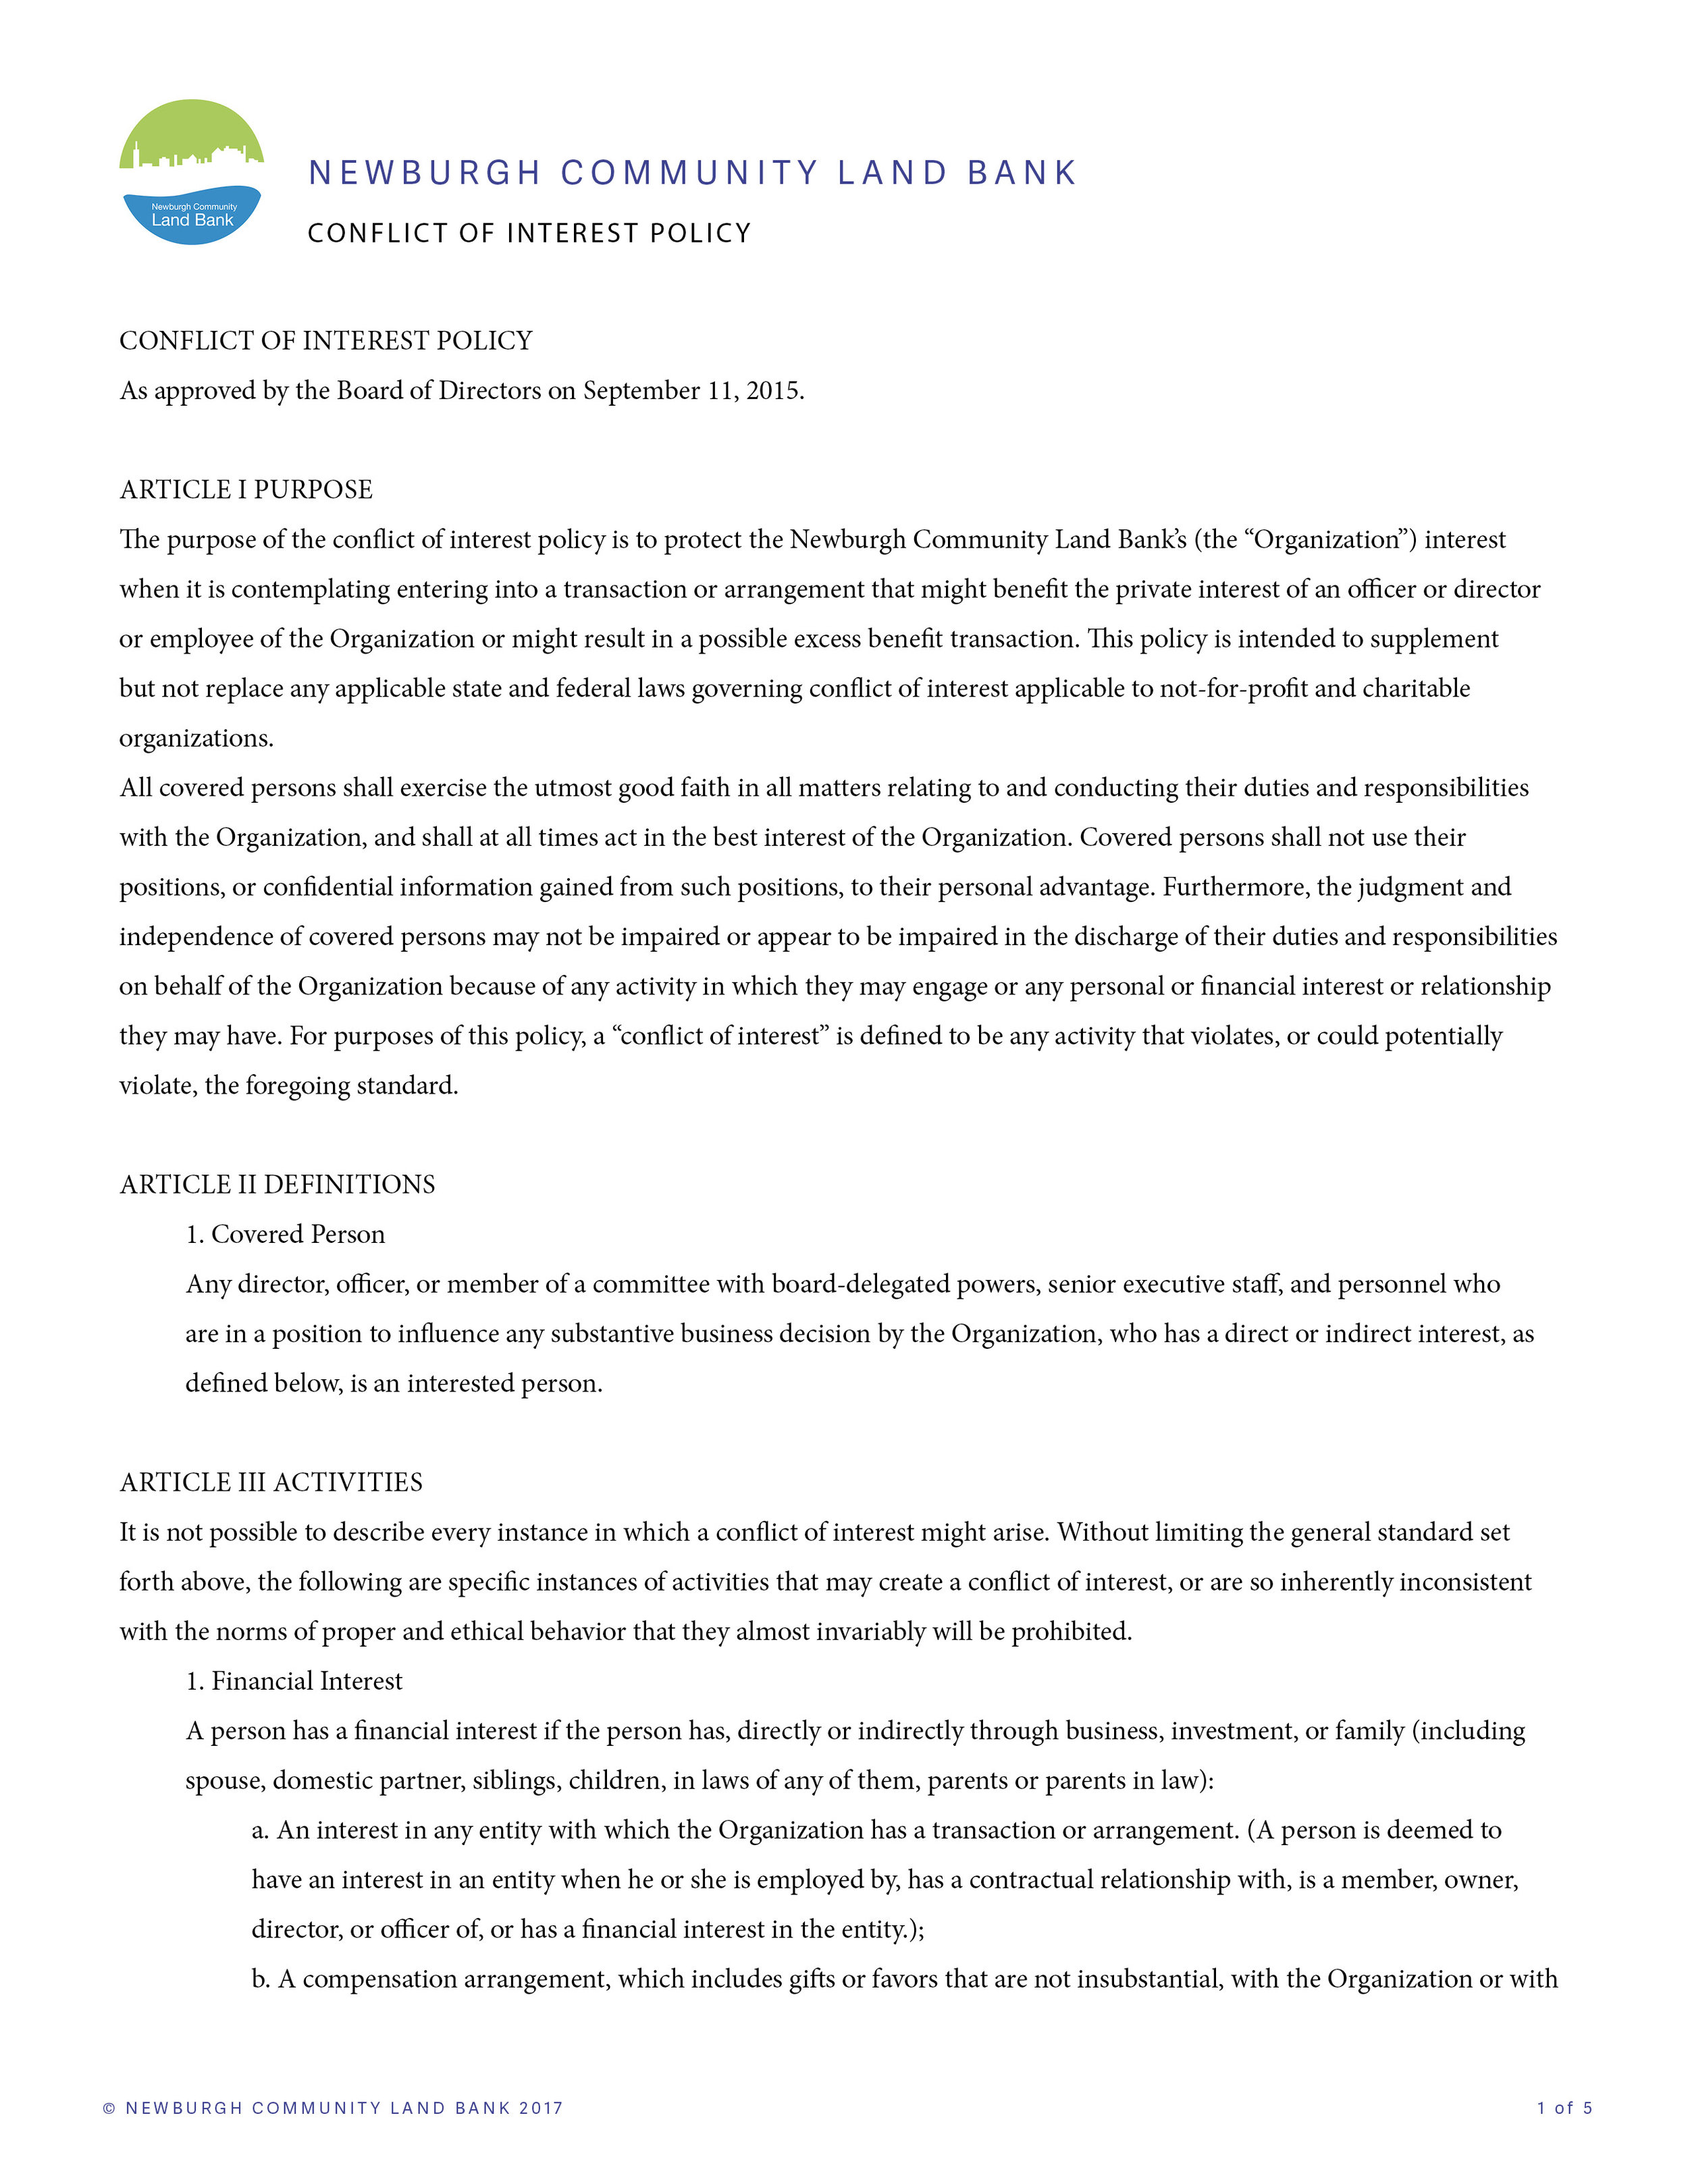 NCLB Conflict of Interest Policy1.jpg